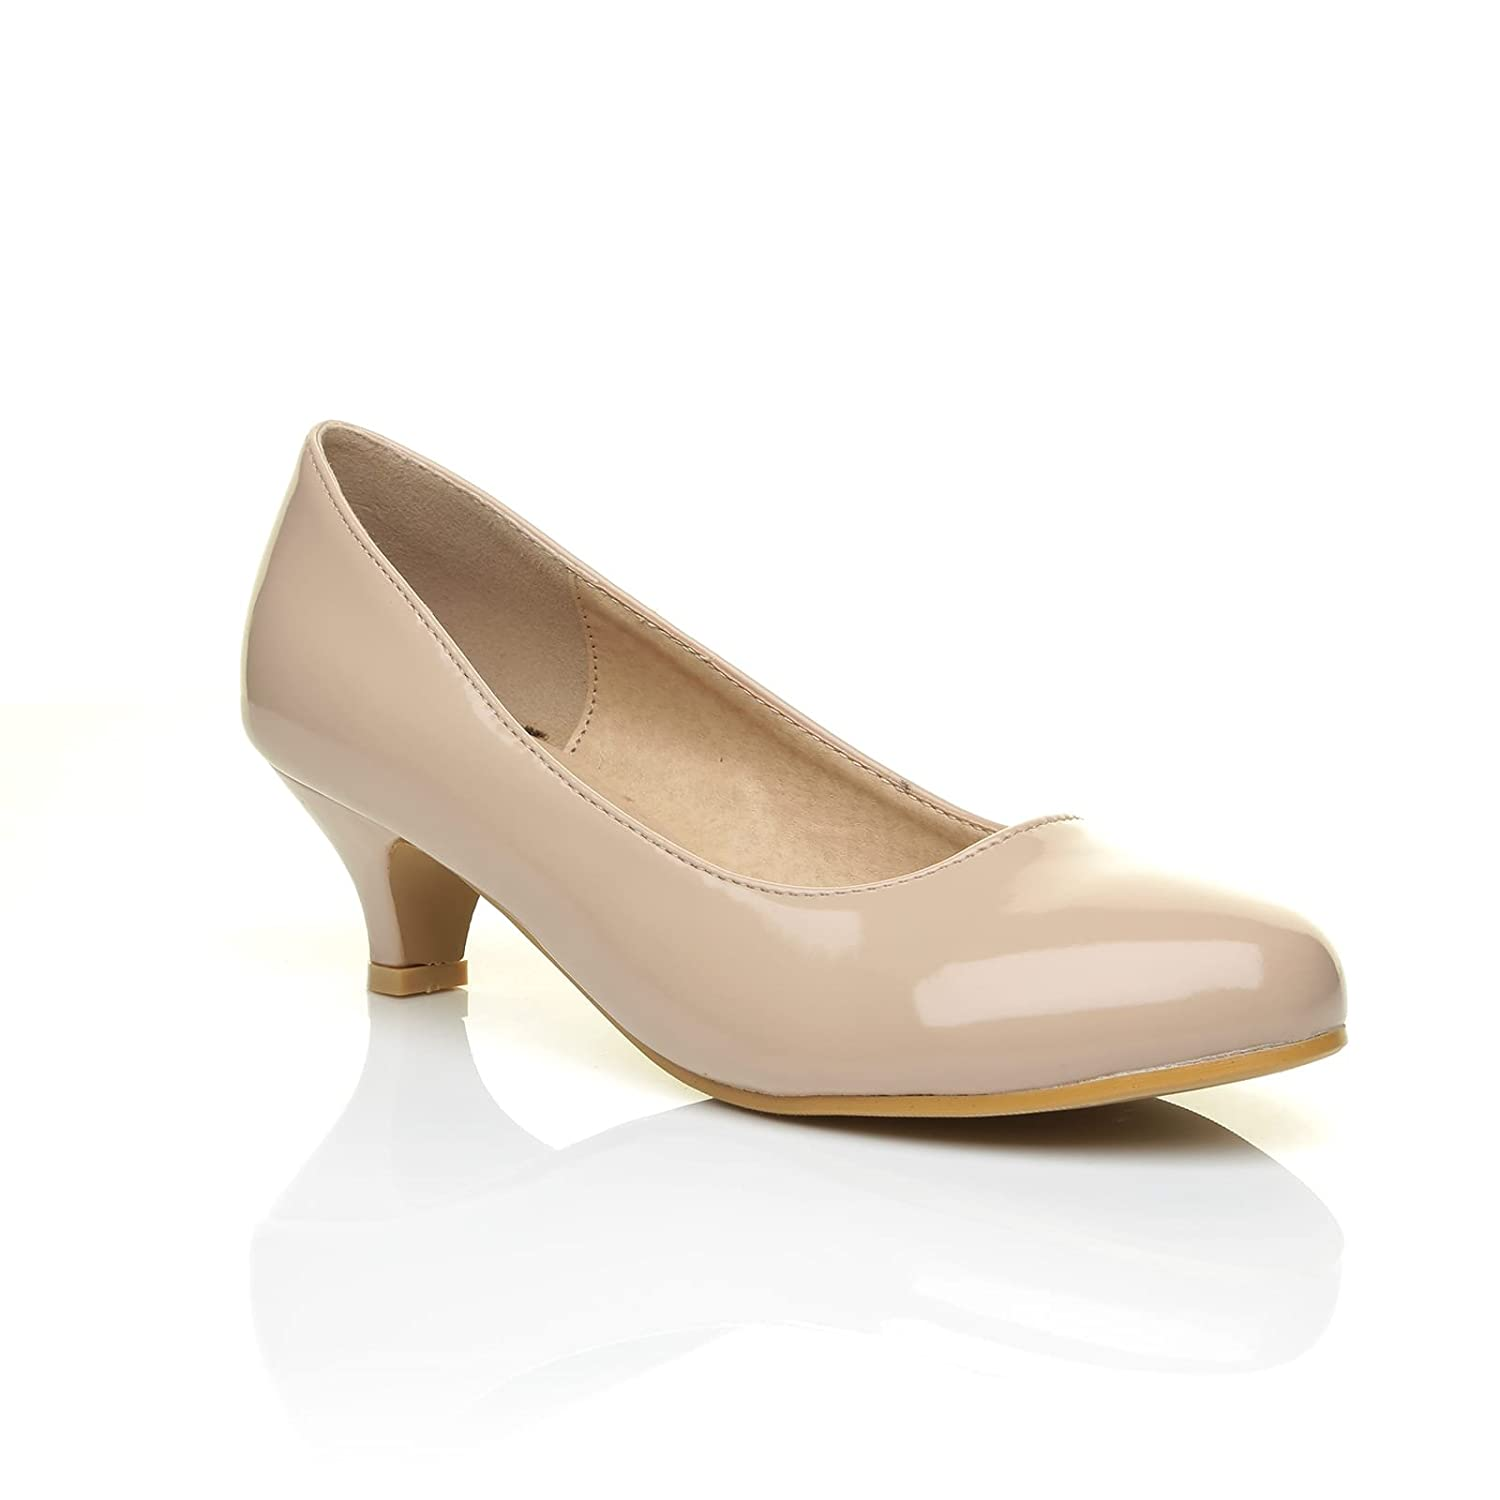 Charm Nude Patent PU Leather Low Heel Round Toe Comfort Court Shoes:  Amazon.co.uk: Shoes & Bags